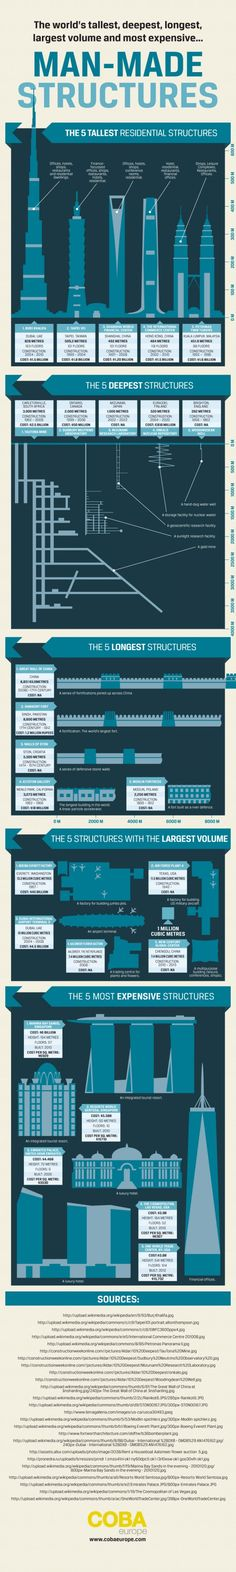 The World's Tallest, Deepest, Longest, Largest Volume, and Most Expensive Buildings